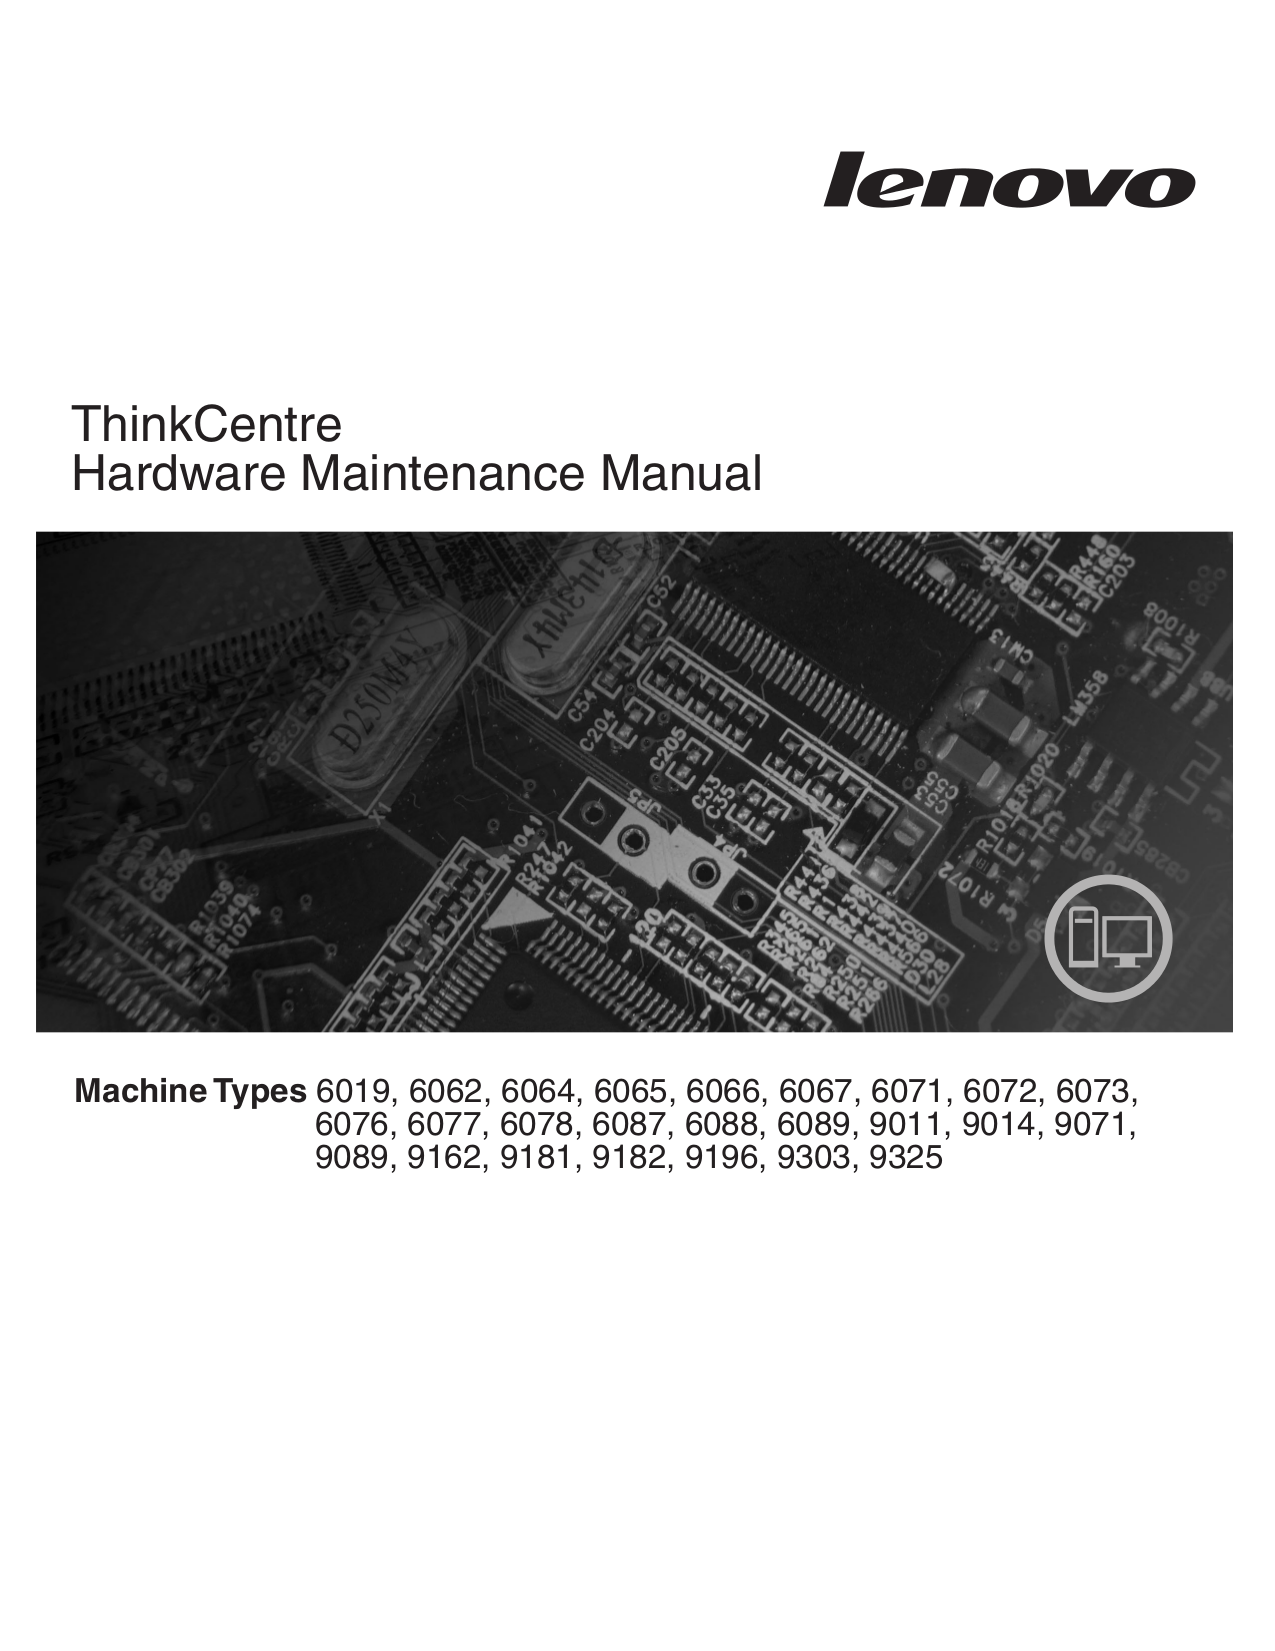 pdf for Lenovo Desktop ThinkCentre M57p 6078 manual